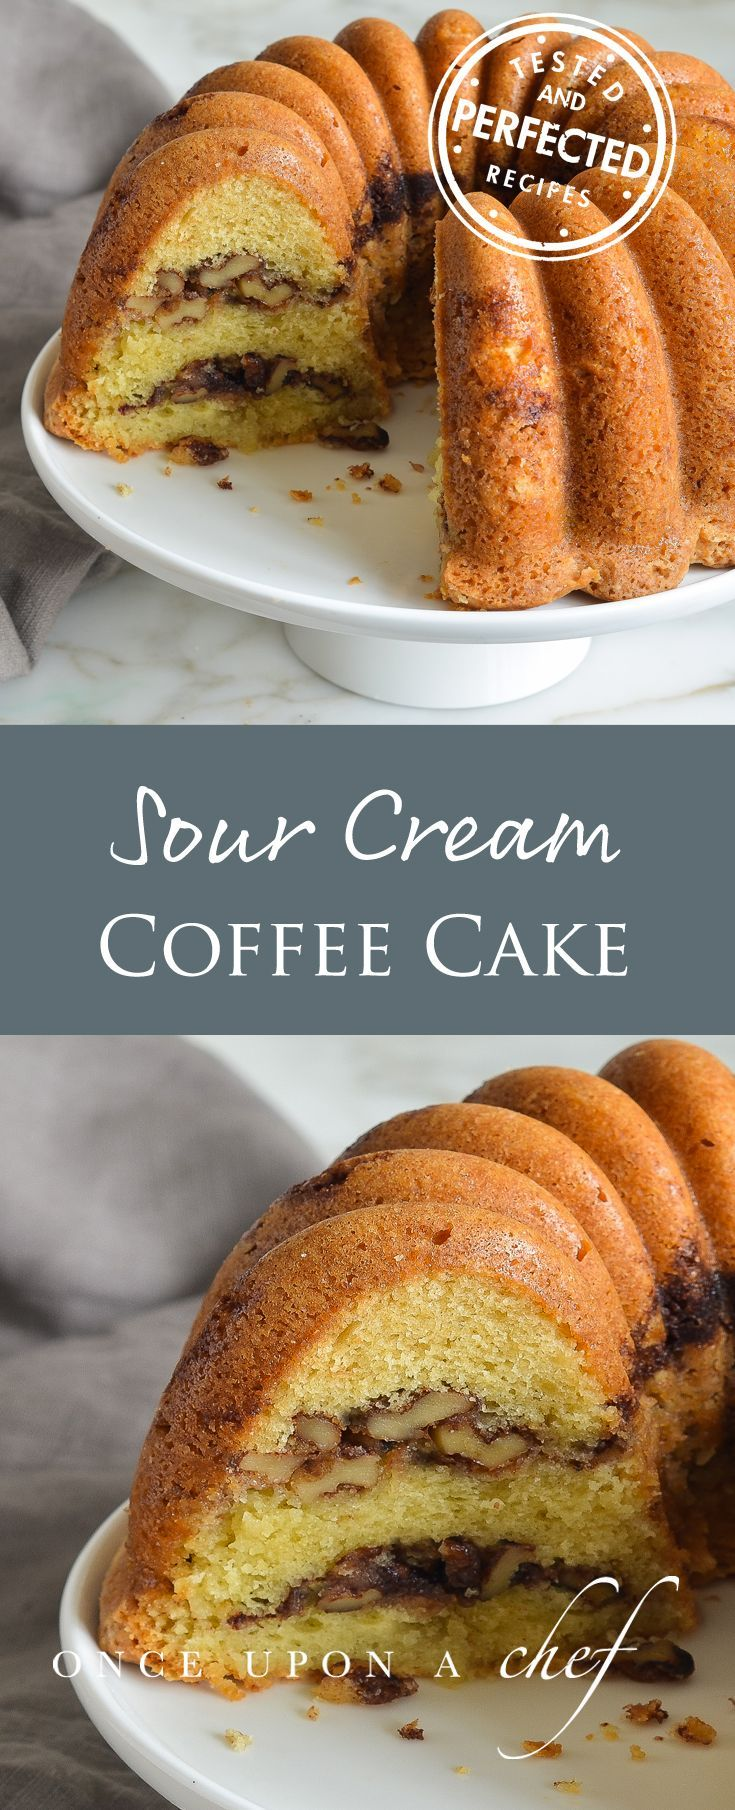 A classic coffee cake is one of the handiest things to have in your baking repertoire - this one is easy, made with sour cream, butter, brown sugar and cooked in a bundt pan. If you love cinnamon rolls, the cinnamon-walnut swirl delight you. #bundtbakers #bundt #cake #testedandperfected #cinnamon #cinnamonrolls